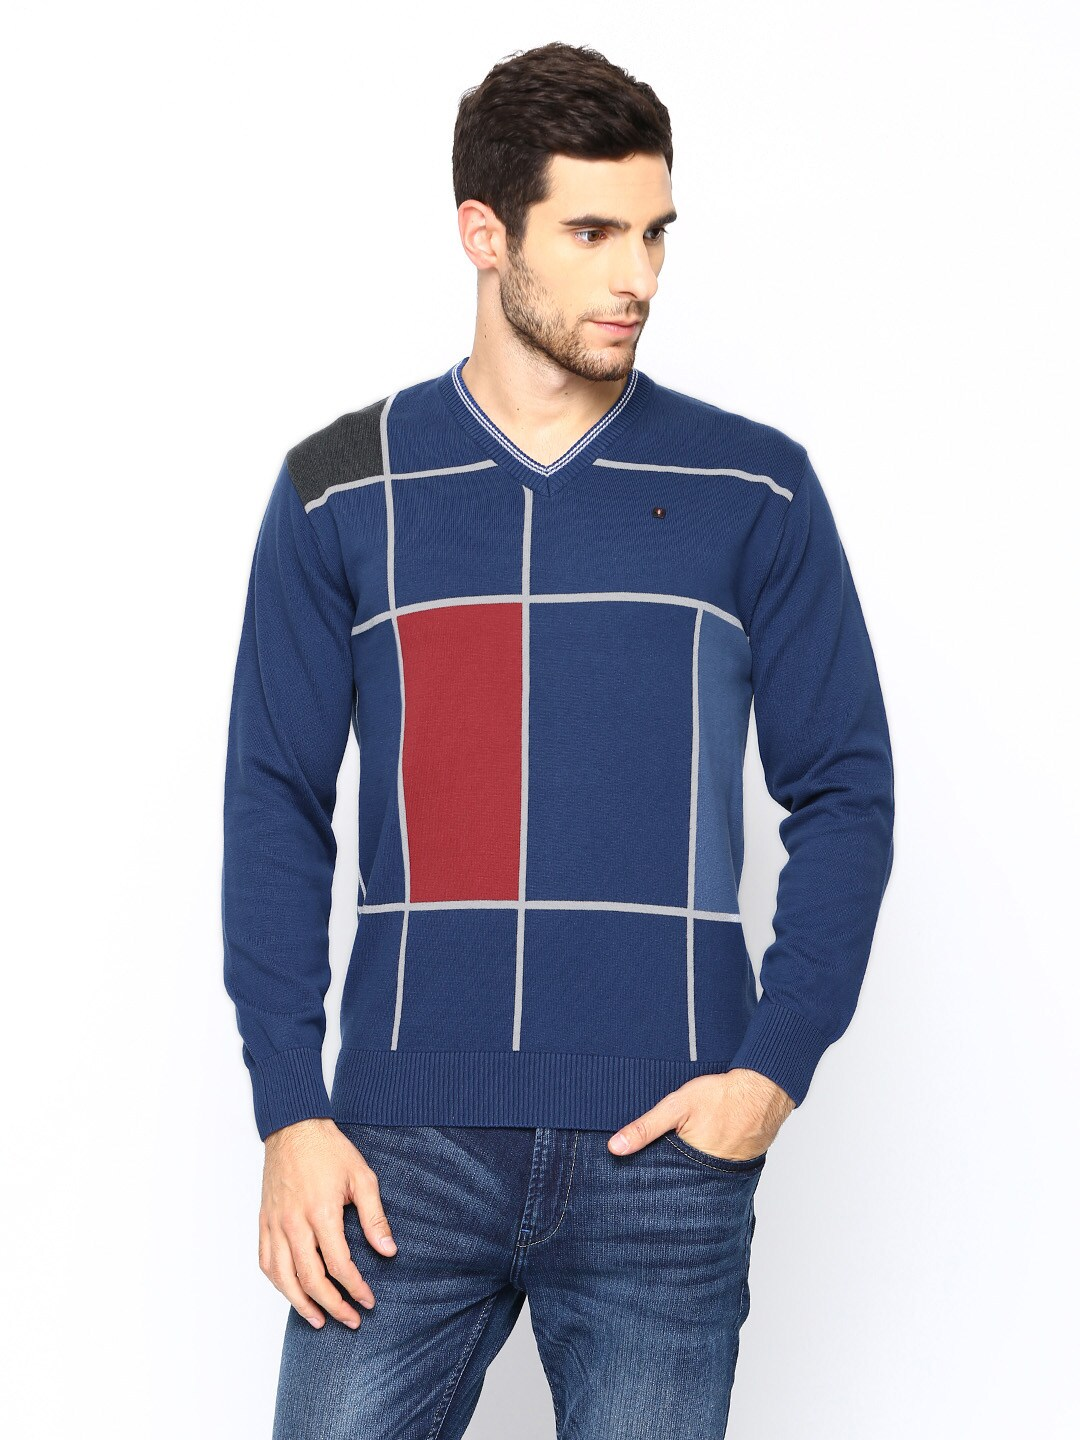 98 Degree North Men Blue Sweater